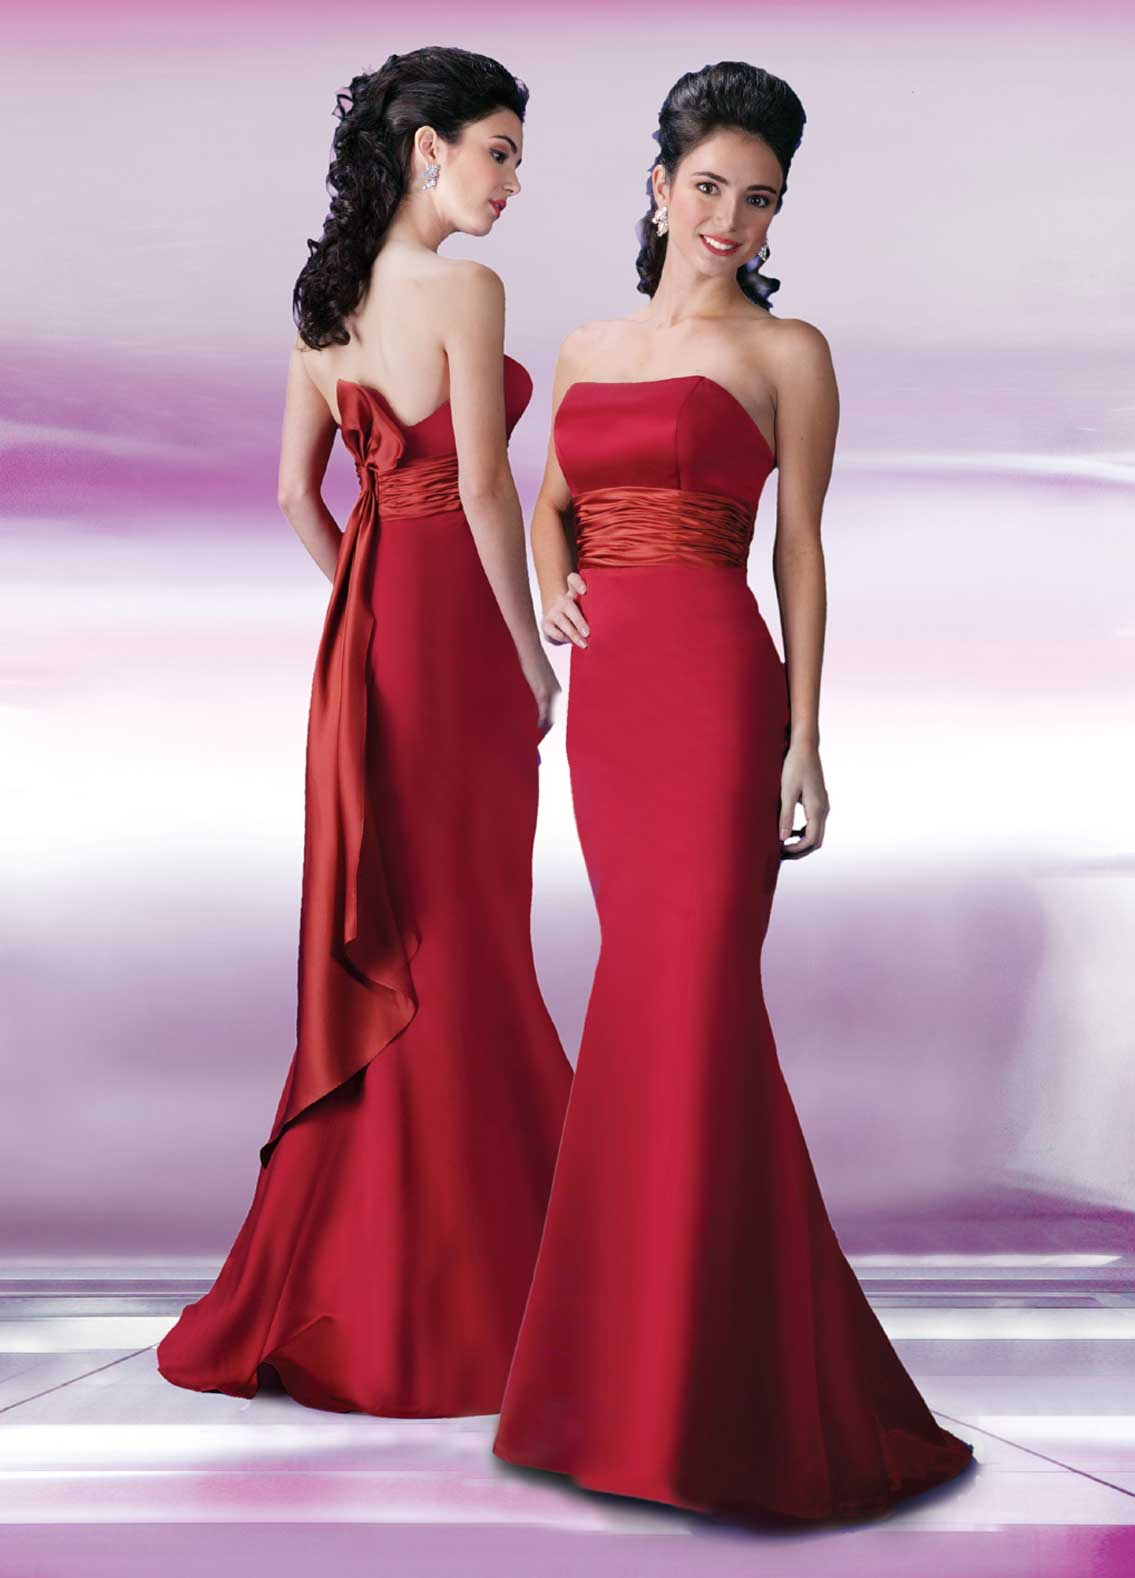 bridesmaid+dress<br><br>Keep in thoughts